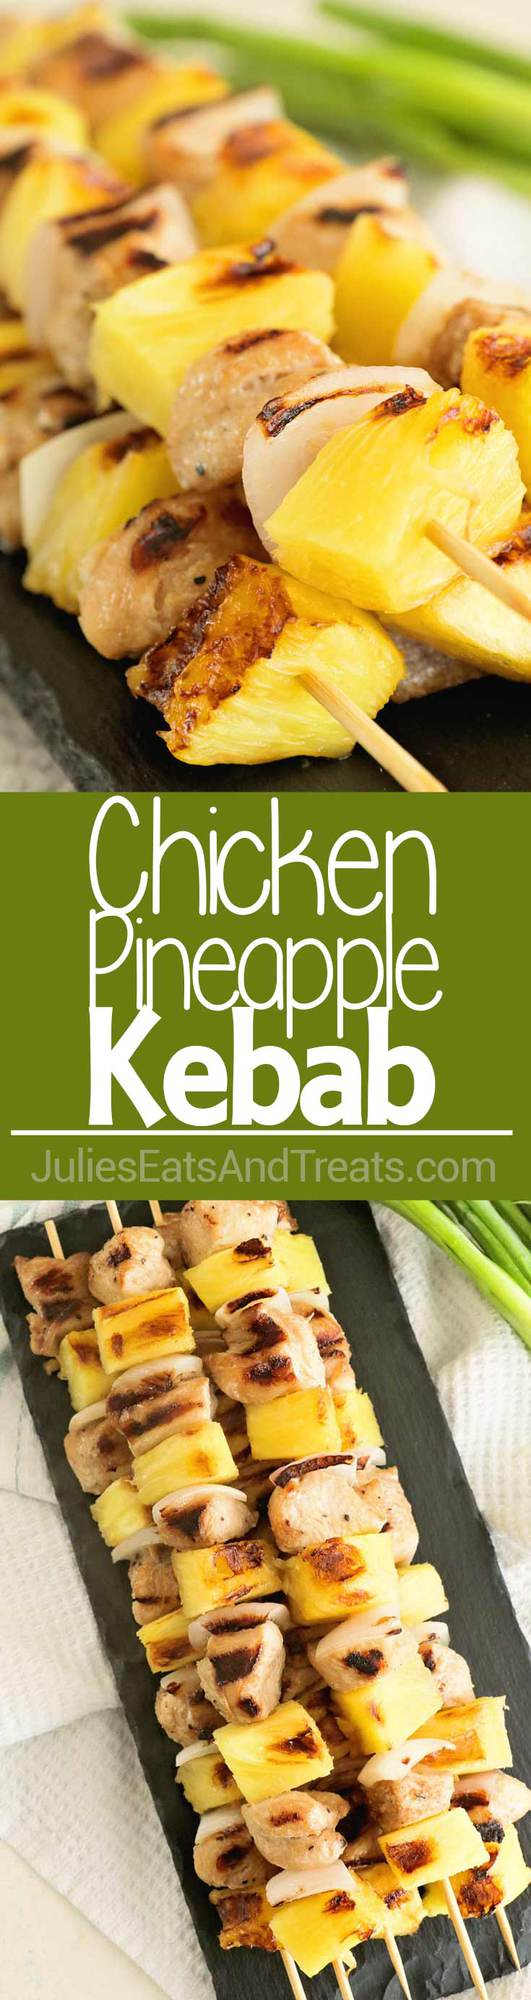 Chicken Pineapple Kebabs ~ Quick and Easy Marinated Skewrs that are the Perfect Combination of Sweet and Tangy!